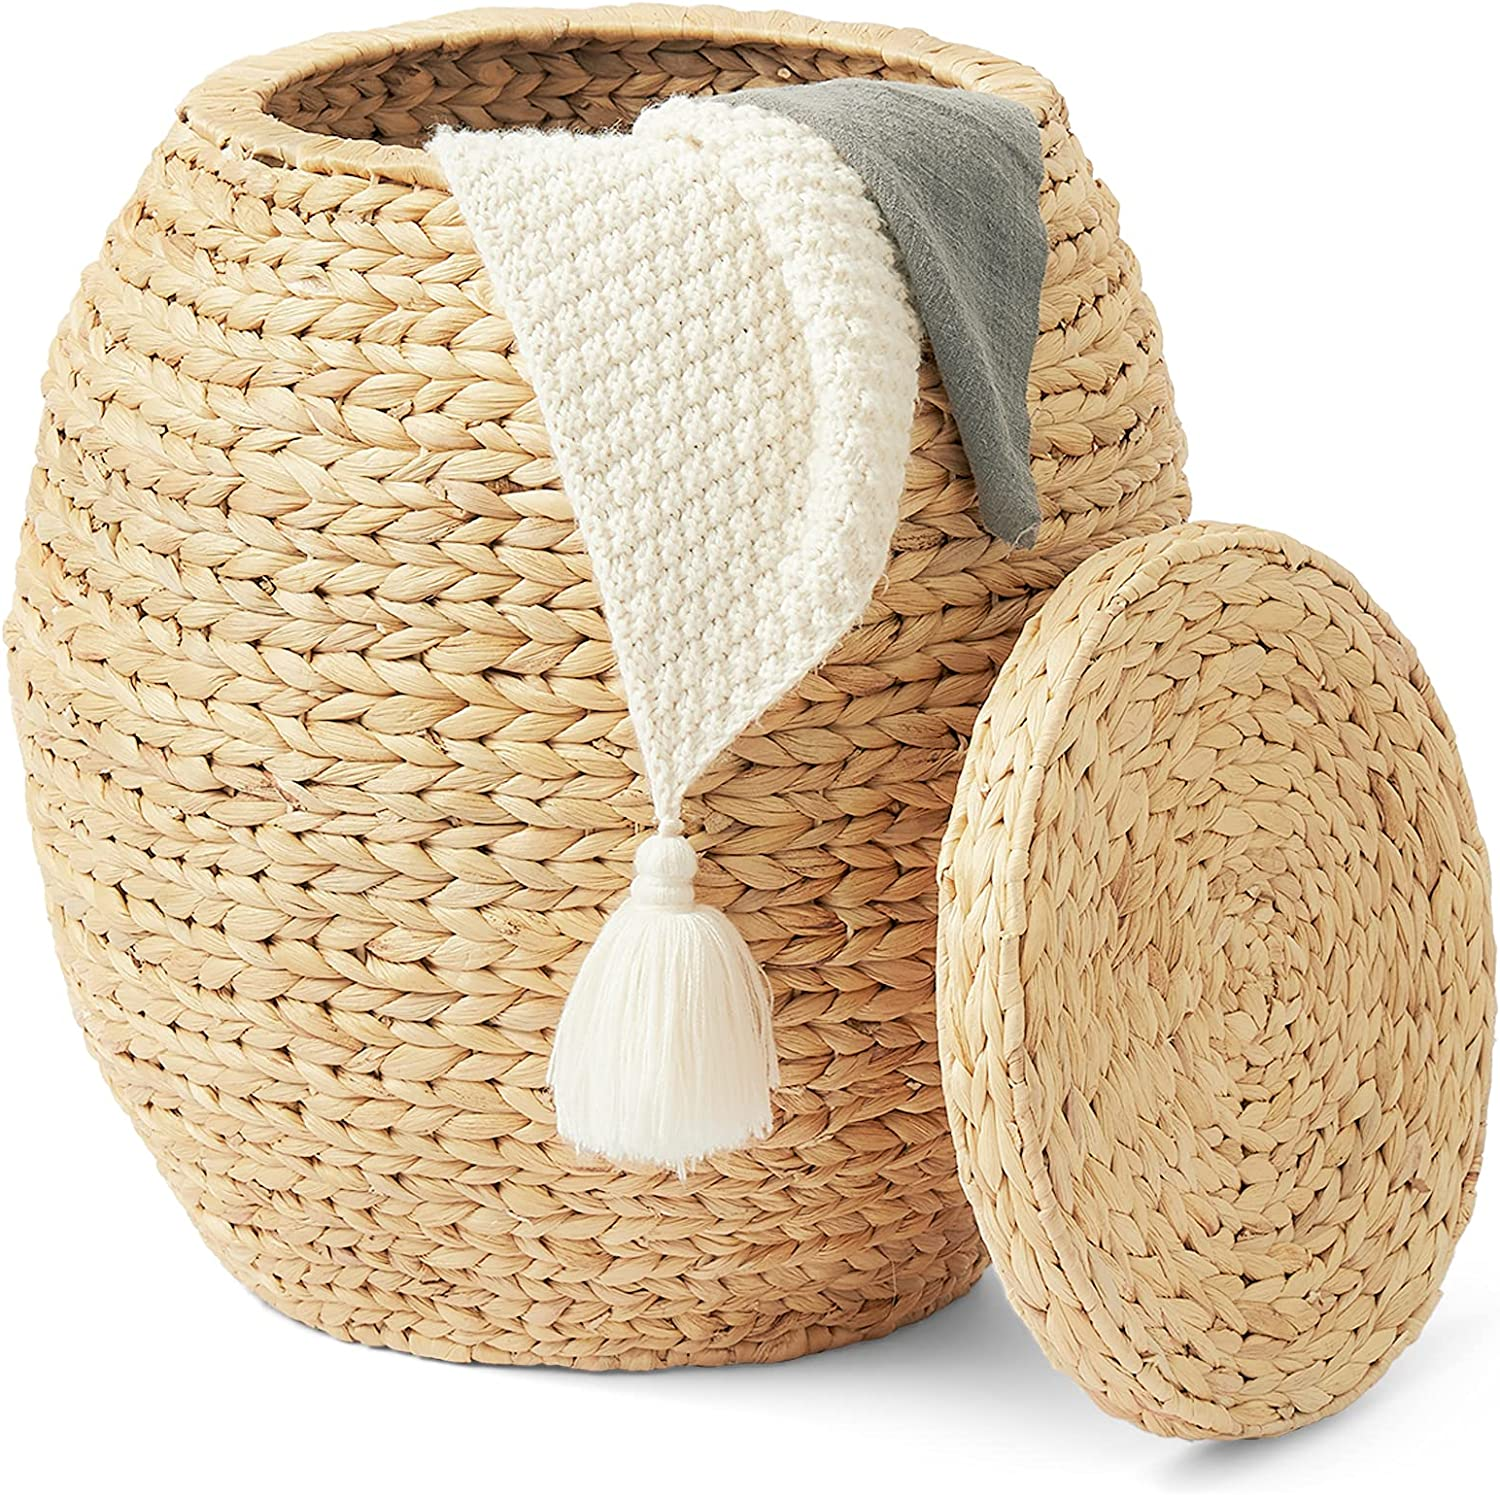 Artera Large Wicker Storage Baskets - Natural Multipurpose Barrel Storage Tub with Lid, Woven Water Hyacinth Basket for Organizing, Plant Décor, Organizer Tote for Bedroom, Living Room, Bathroom